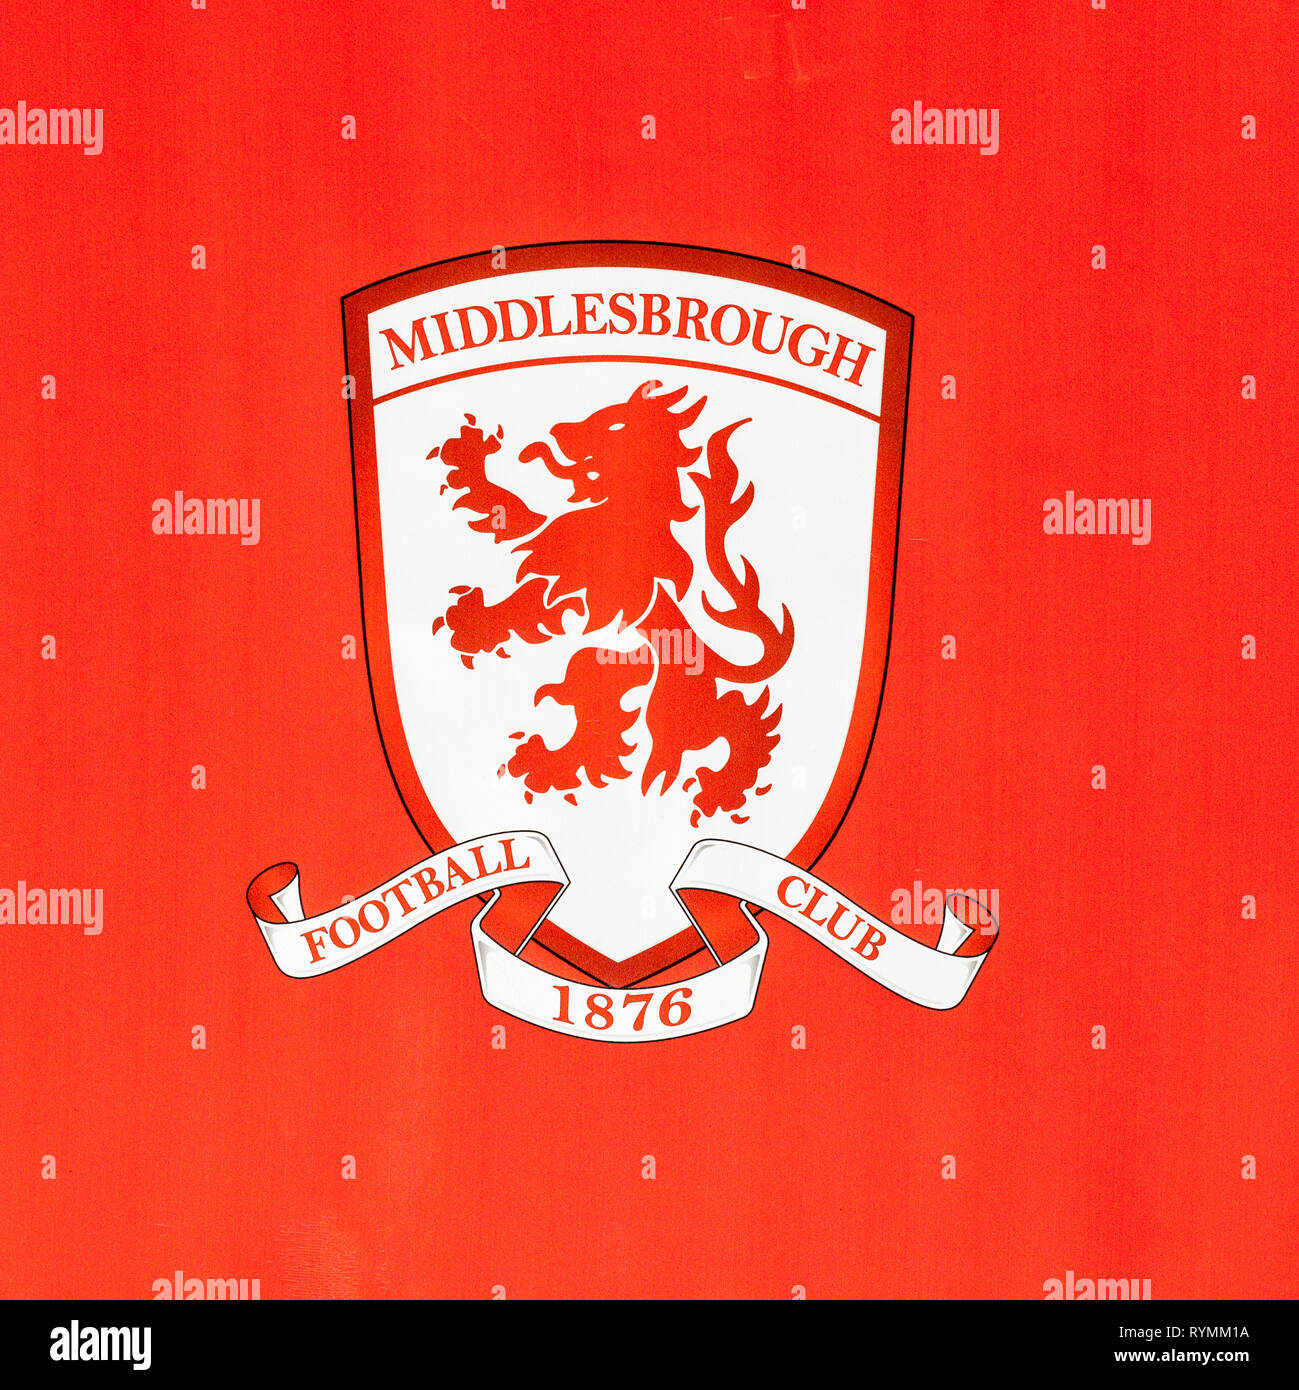 The Middlesbrough Footbal Club badge outside the stadium at Middlesbrough, England,UK - Stock Image